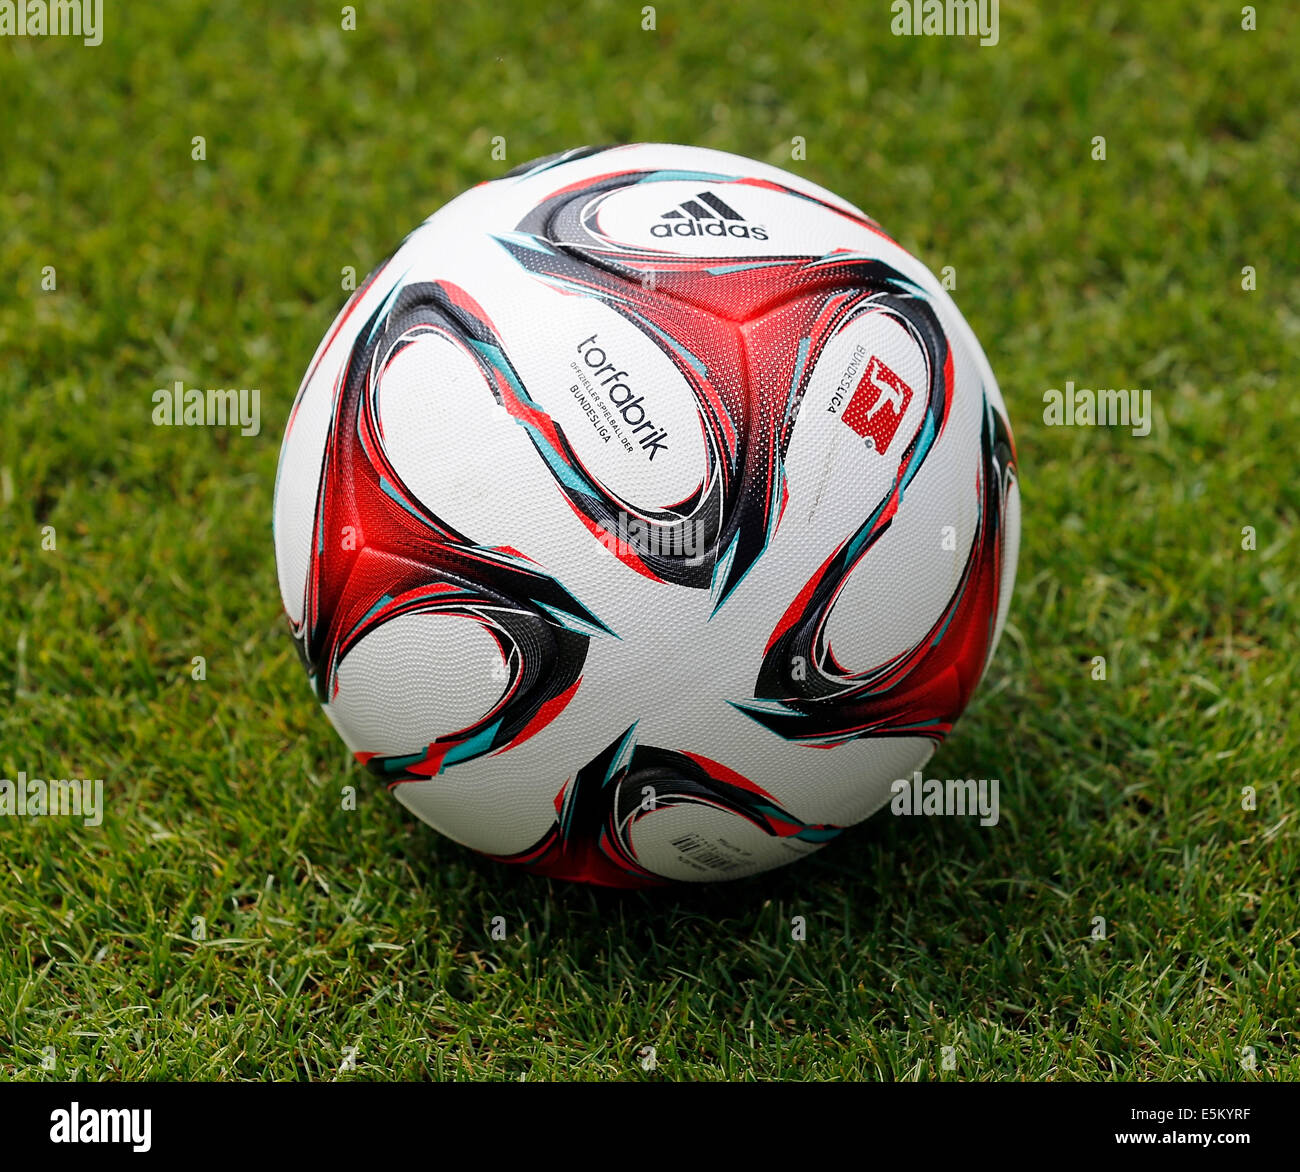 "Football ""Torfabrik"", season 2014 - 2015, Germany - Stock Image"